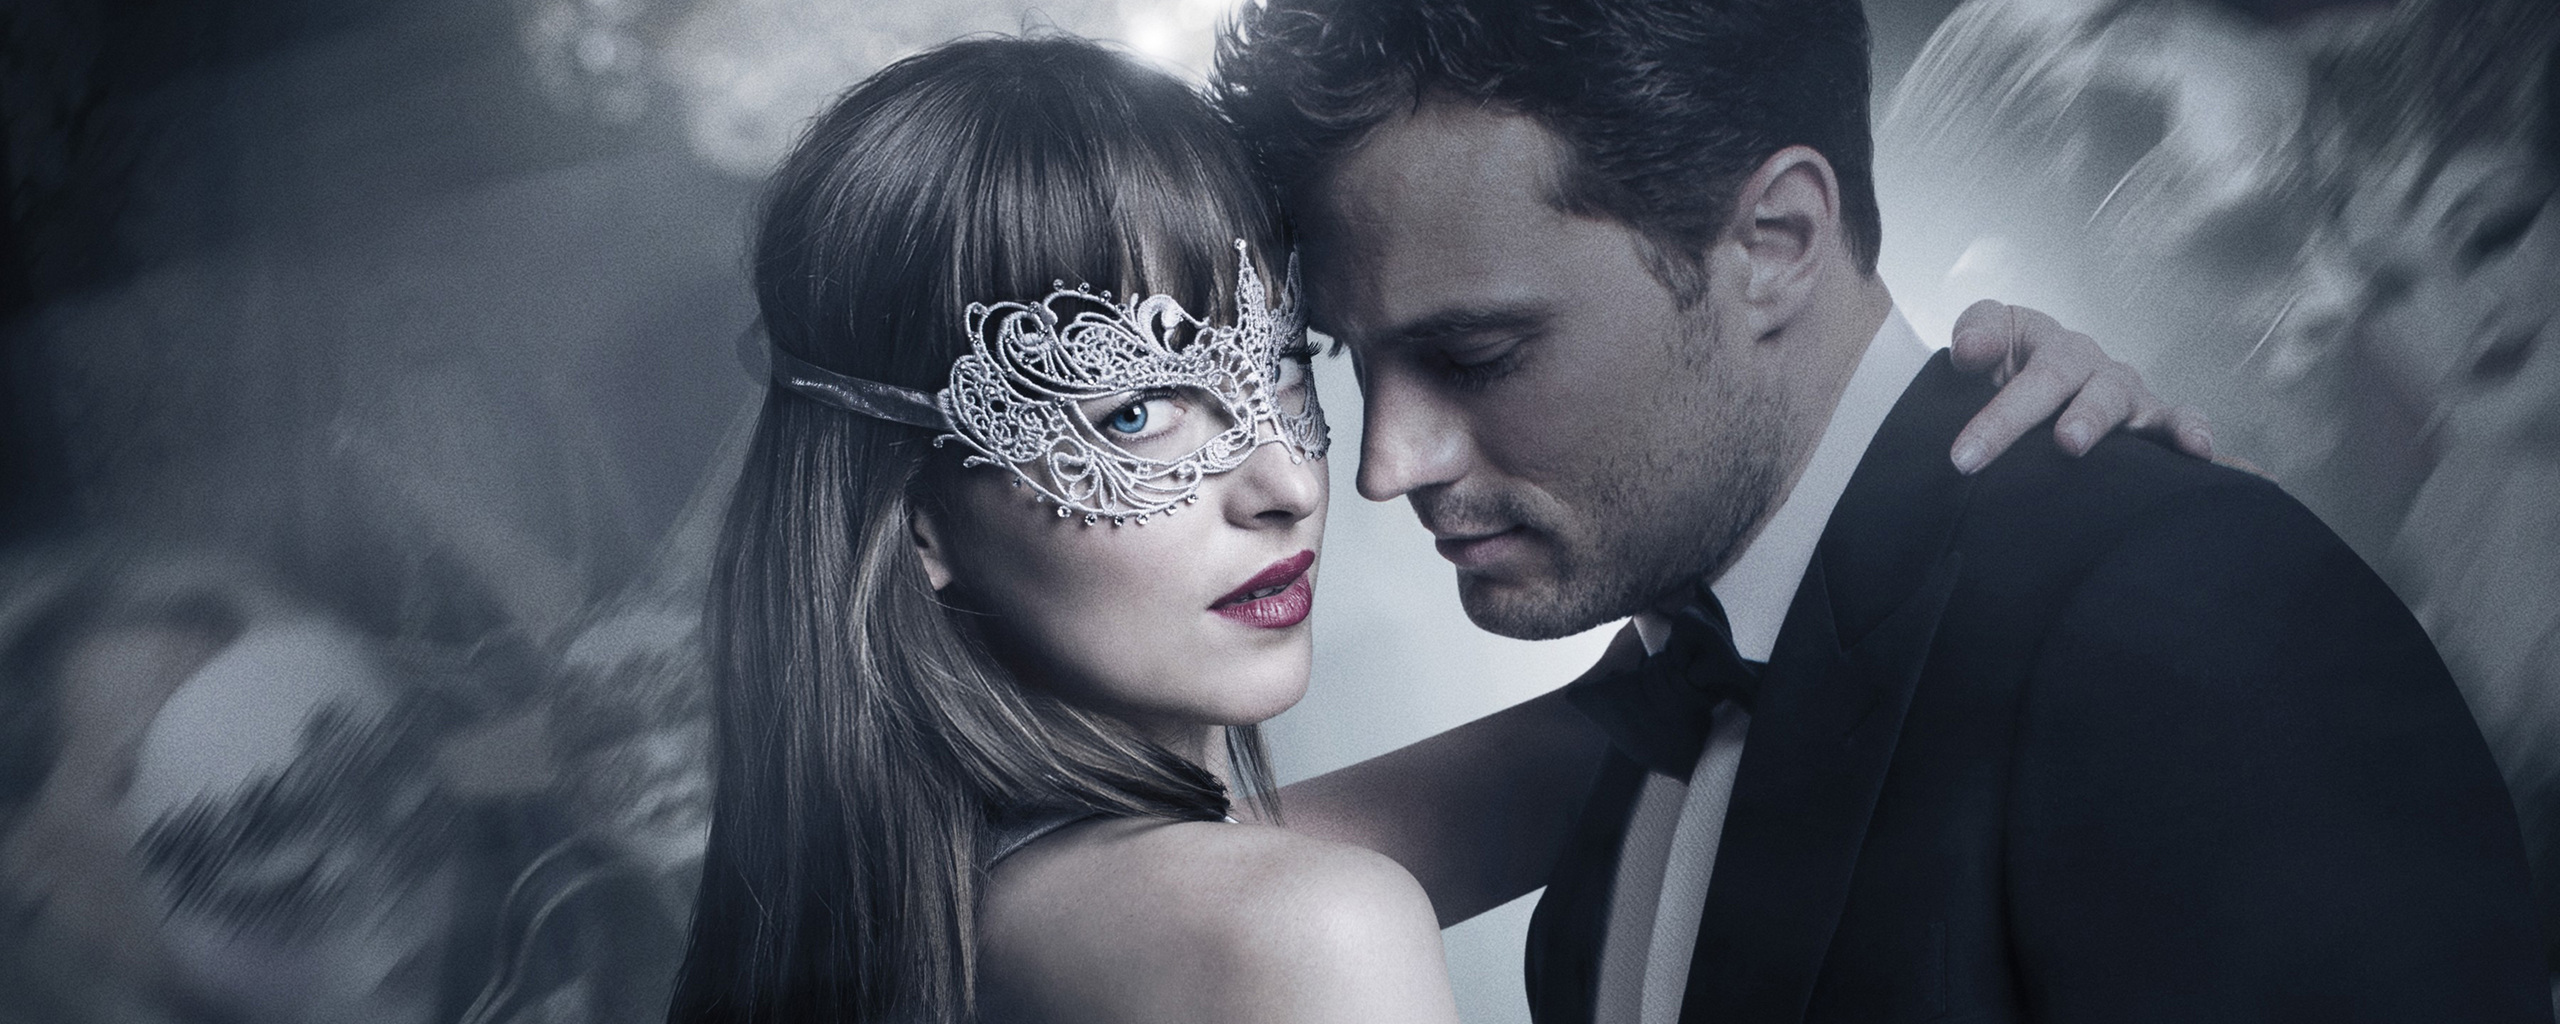 fifty-shades-darker-2017-movie-4k-4k.jpg